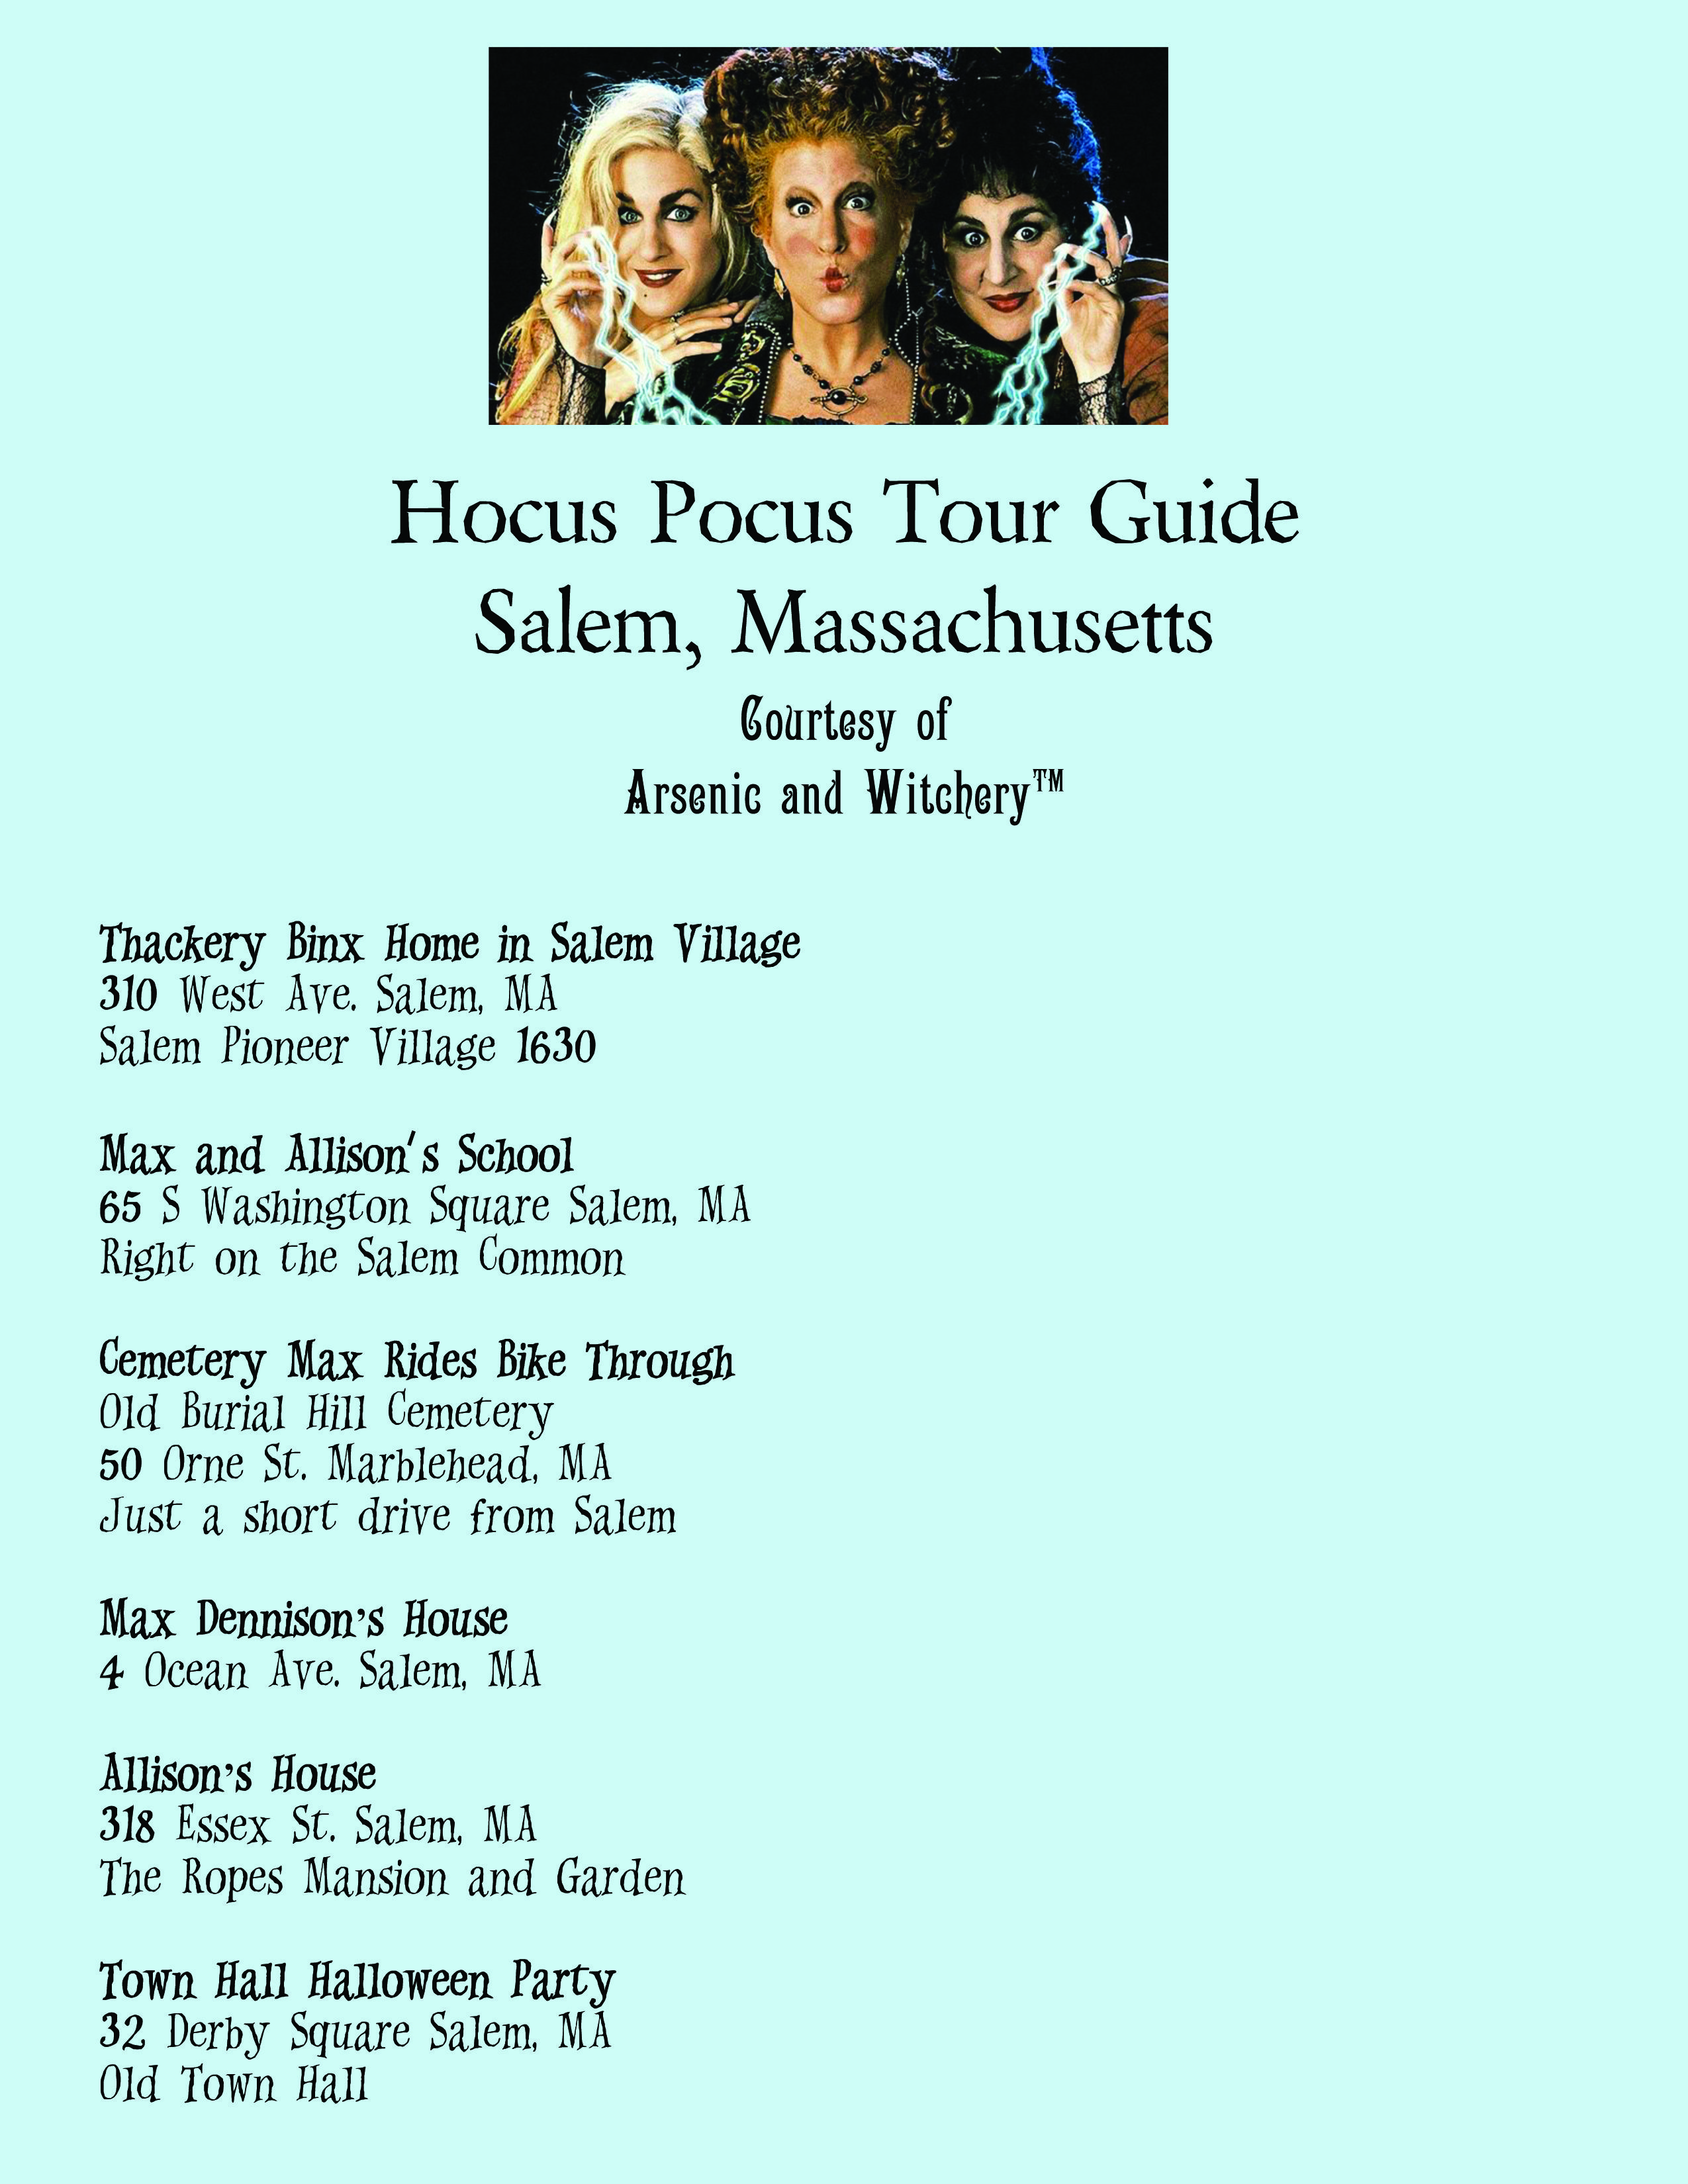 Free Hocus Pocus Movie Location Guide Salem, MA ***Dennison house is actually 3 Ocean Dr***